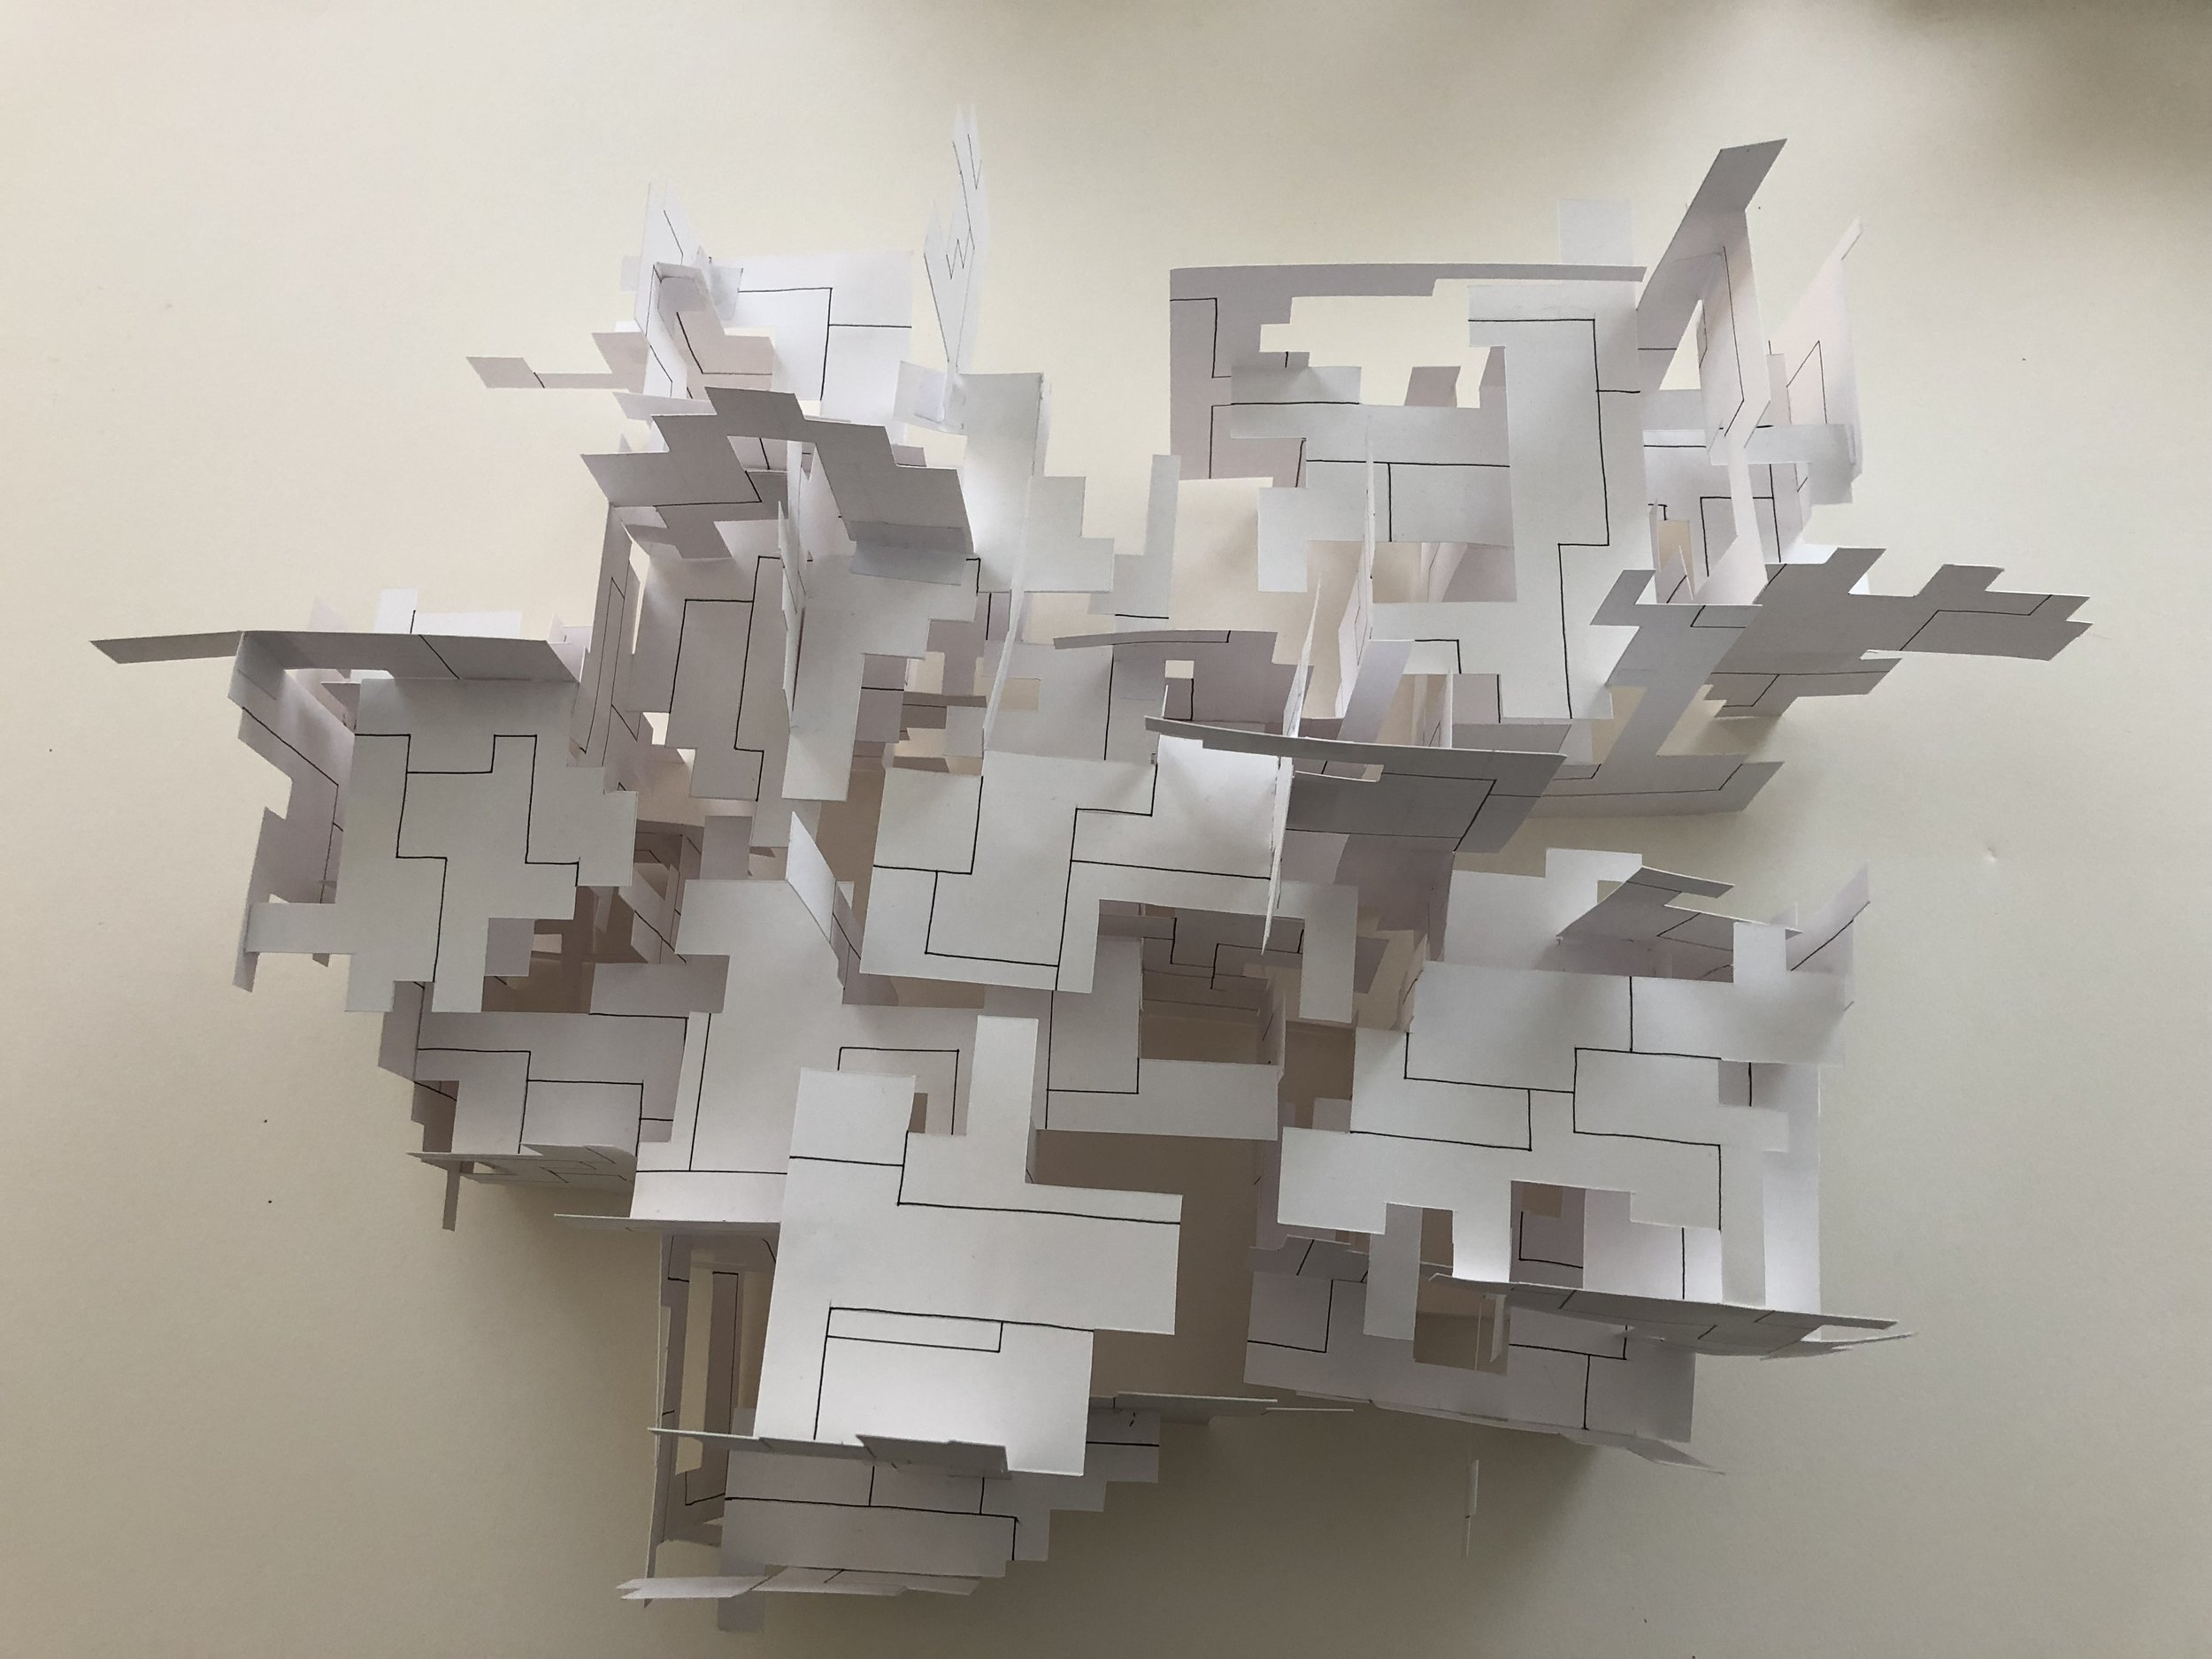 Massed Paper Constructions study